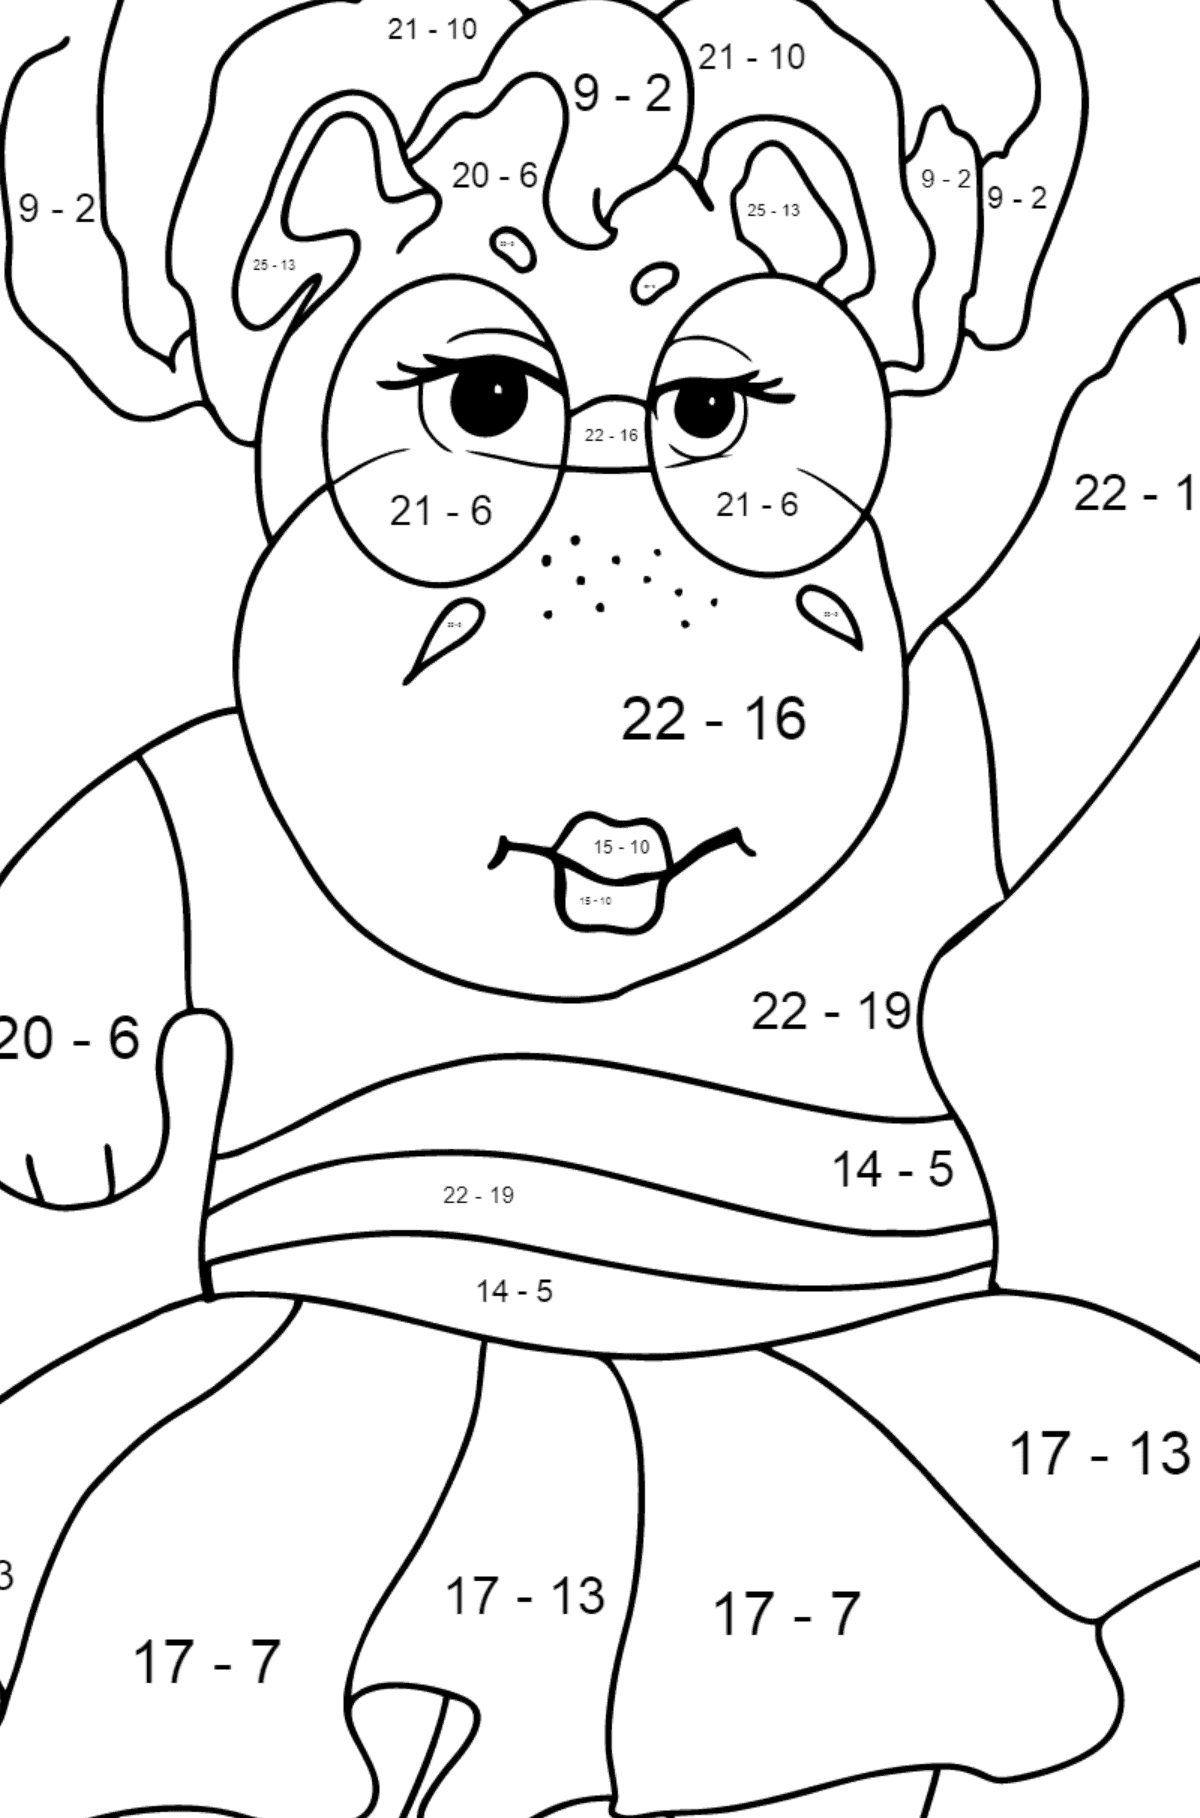 Coloring Page - A Hippo in Sunglasses for Kids  - Color by Number Substraction